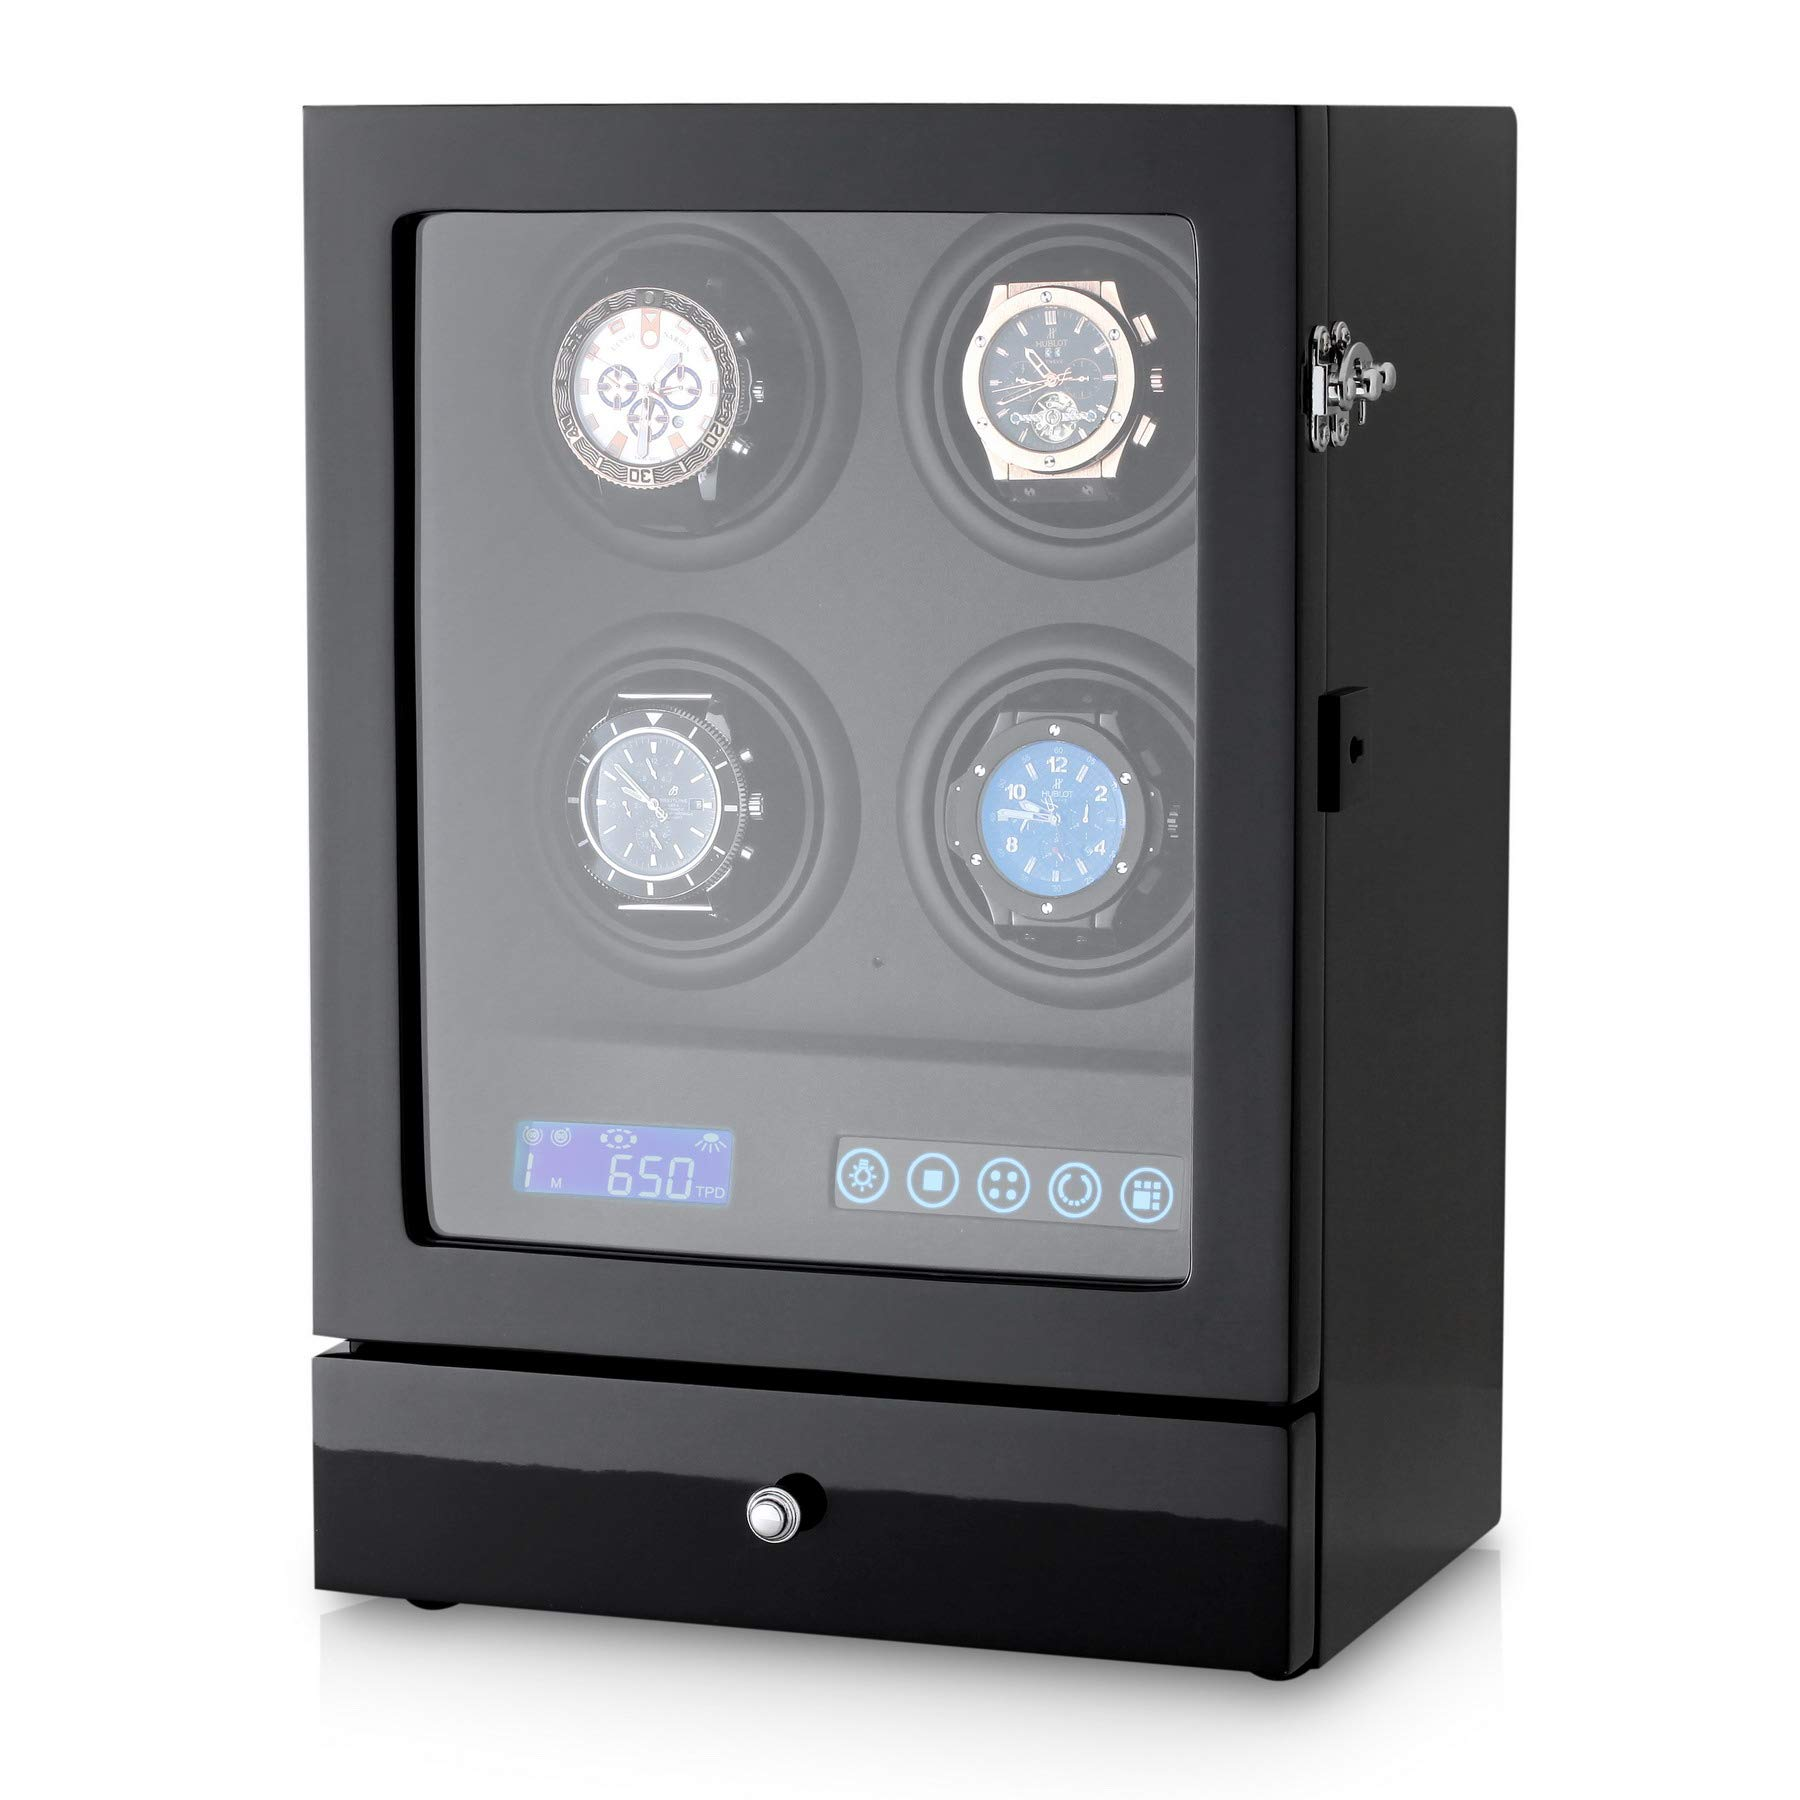 Automatic Watch Winder Box with Watches and Jewellery Storage Drawer, LED Backlight and LCD Touchscreen Control (Black + Black)